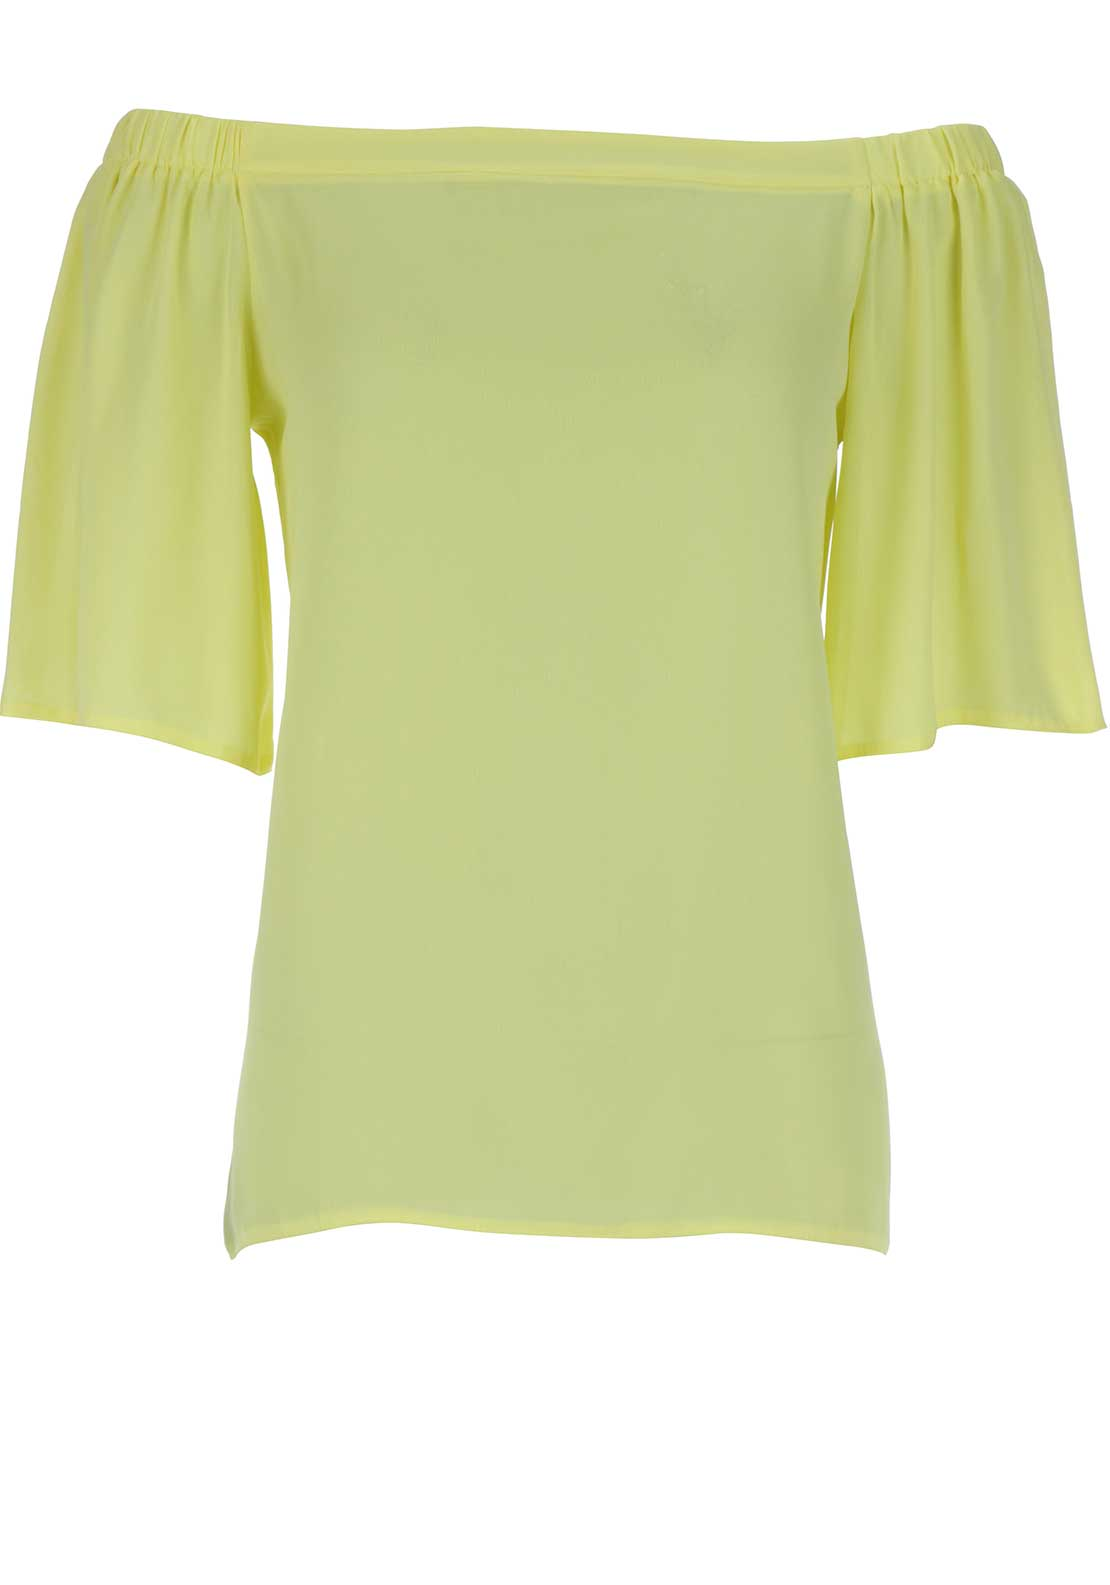 Boutique Off The Shoulder Top, Lemon